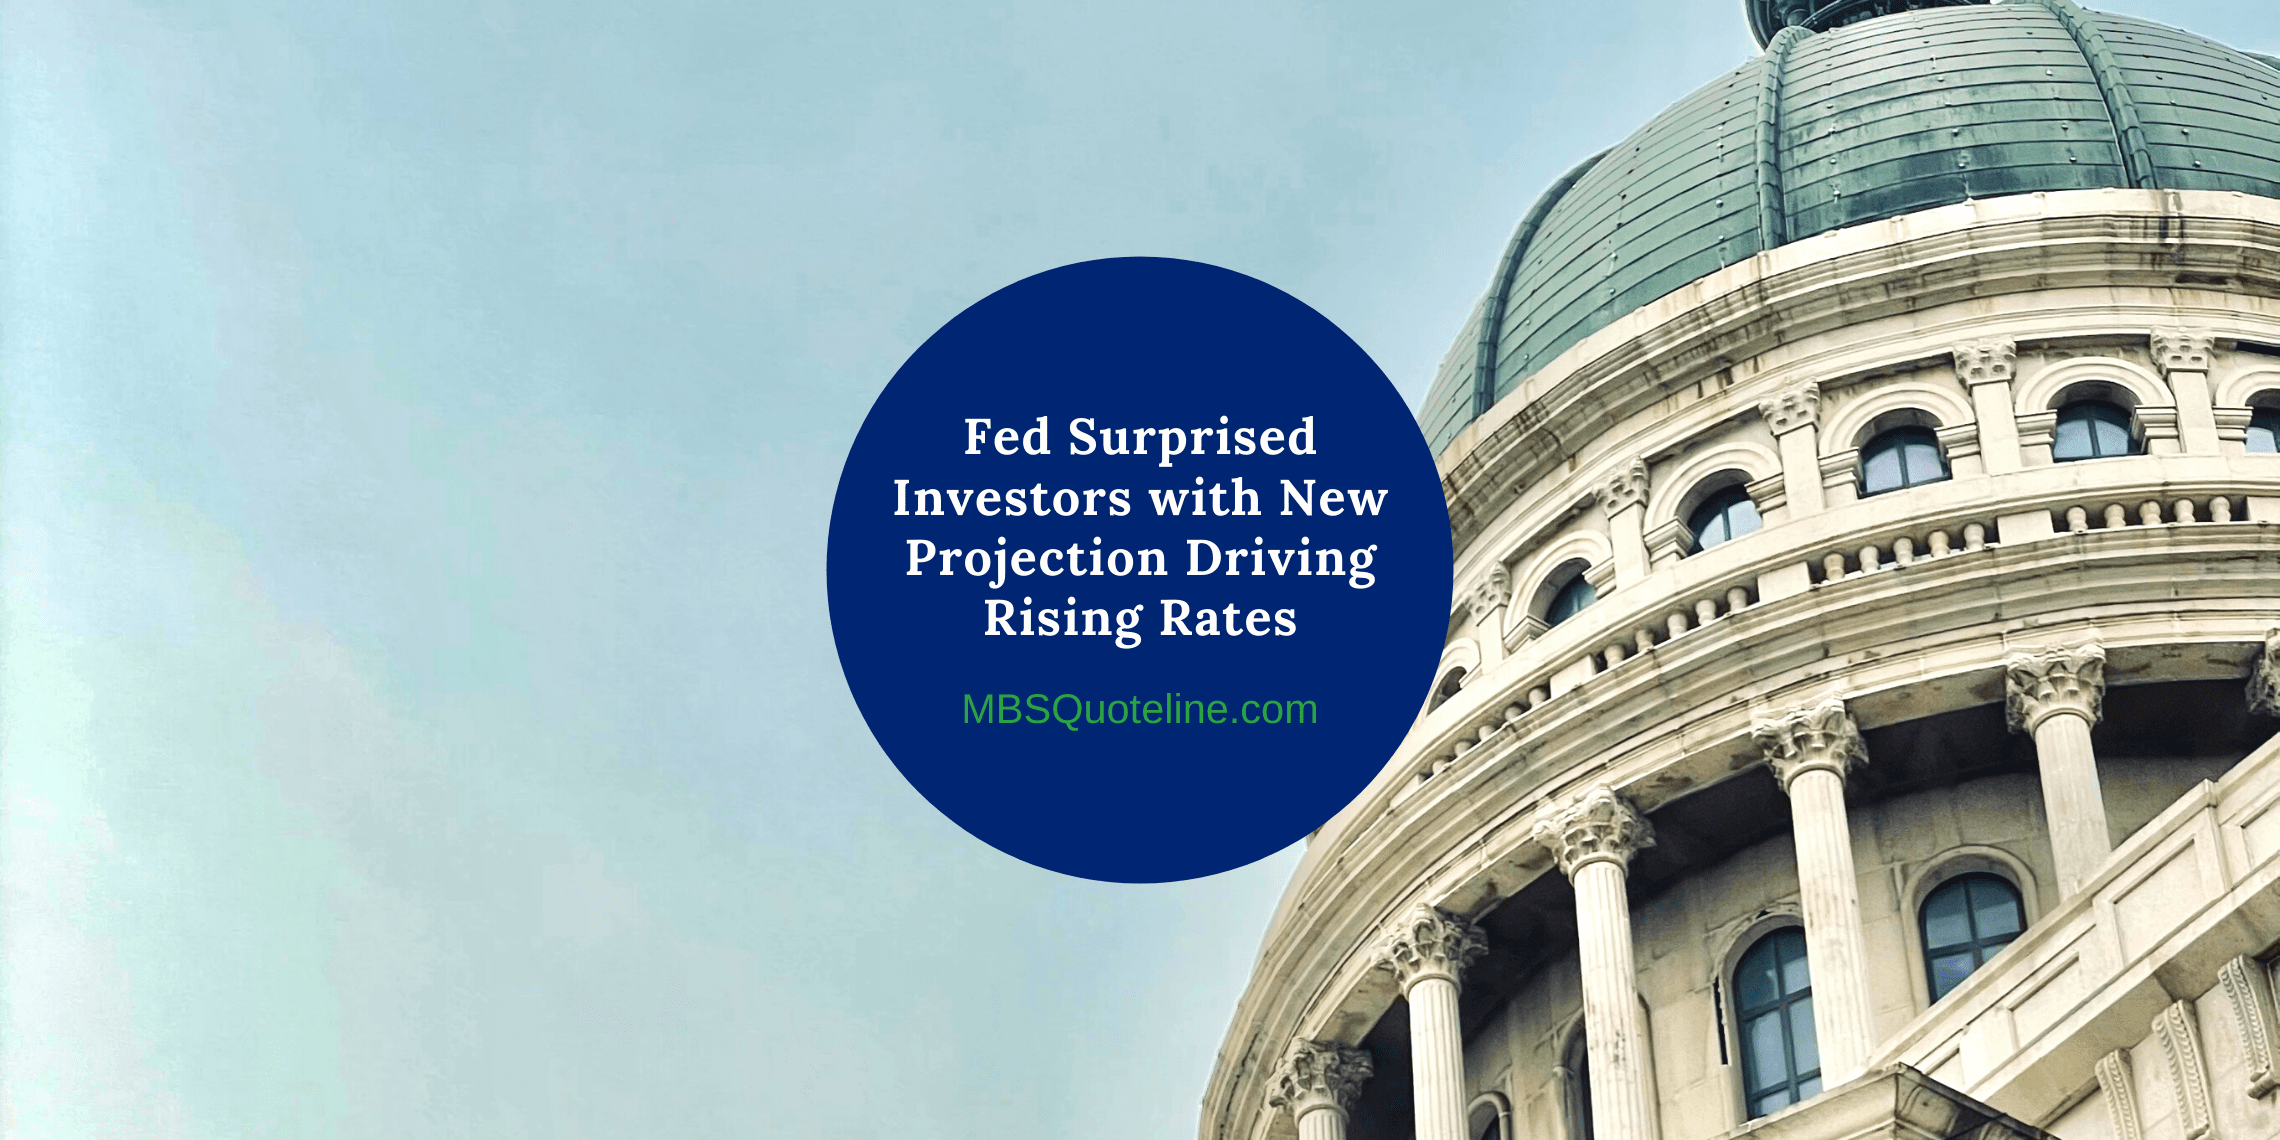 Fed Surprised Investors with New Projection Driving Rising Rates MortgageTime MBSQuoteline